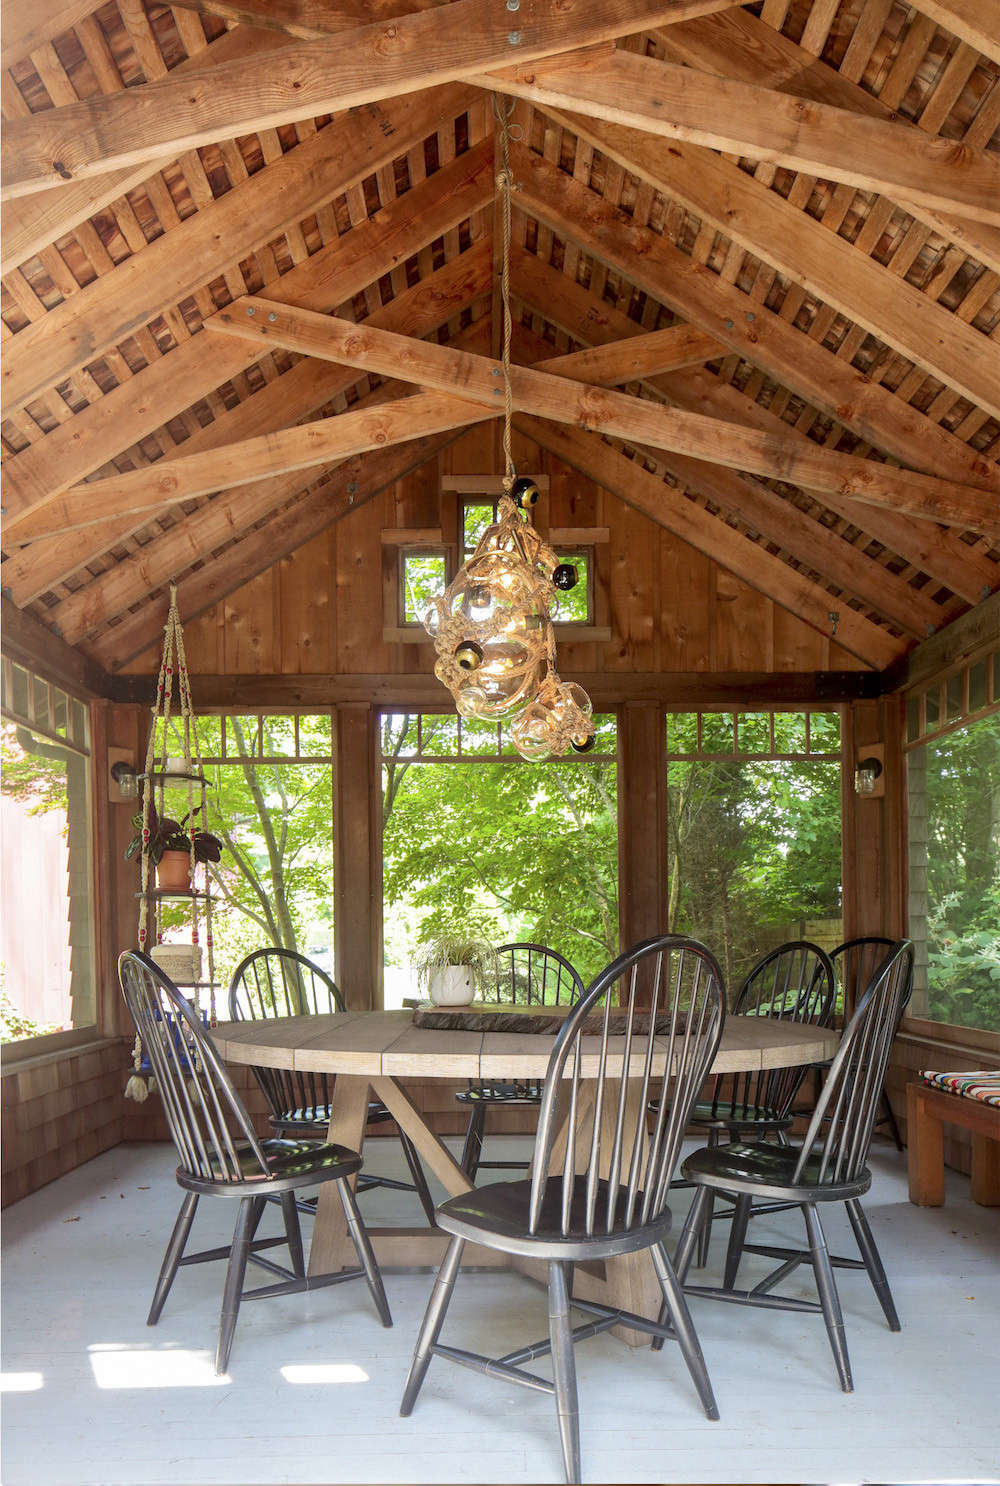 At one end of the porch, Elizabeth has created an outdoor dining area. For a similar shade of gray for the flooring, consider Benjamin Moore's Stormy Monday. The Knotty Bubble chandelier by Lindsey Adelman was inspired by Japanese packaging, buoys, and shibari.